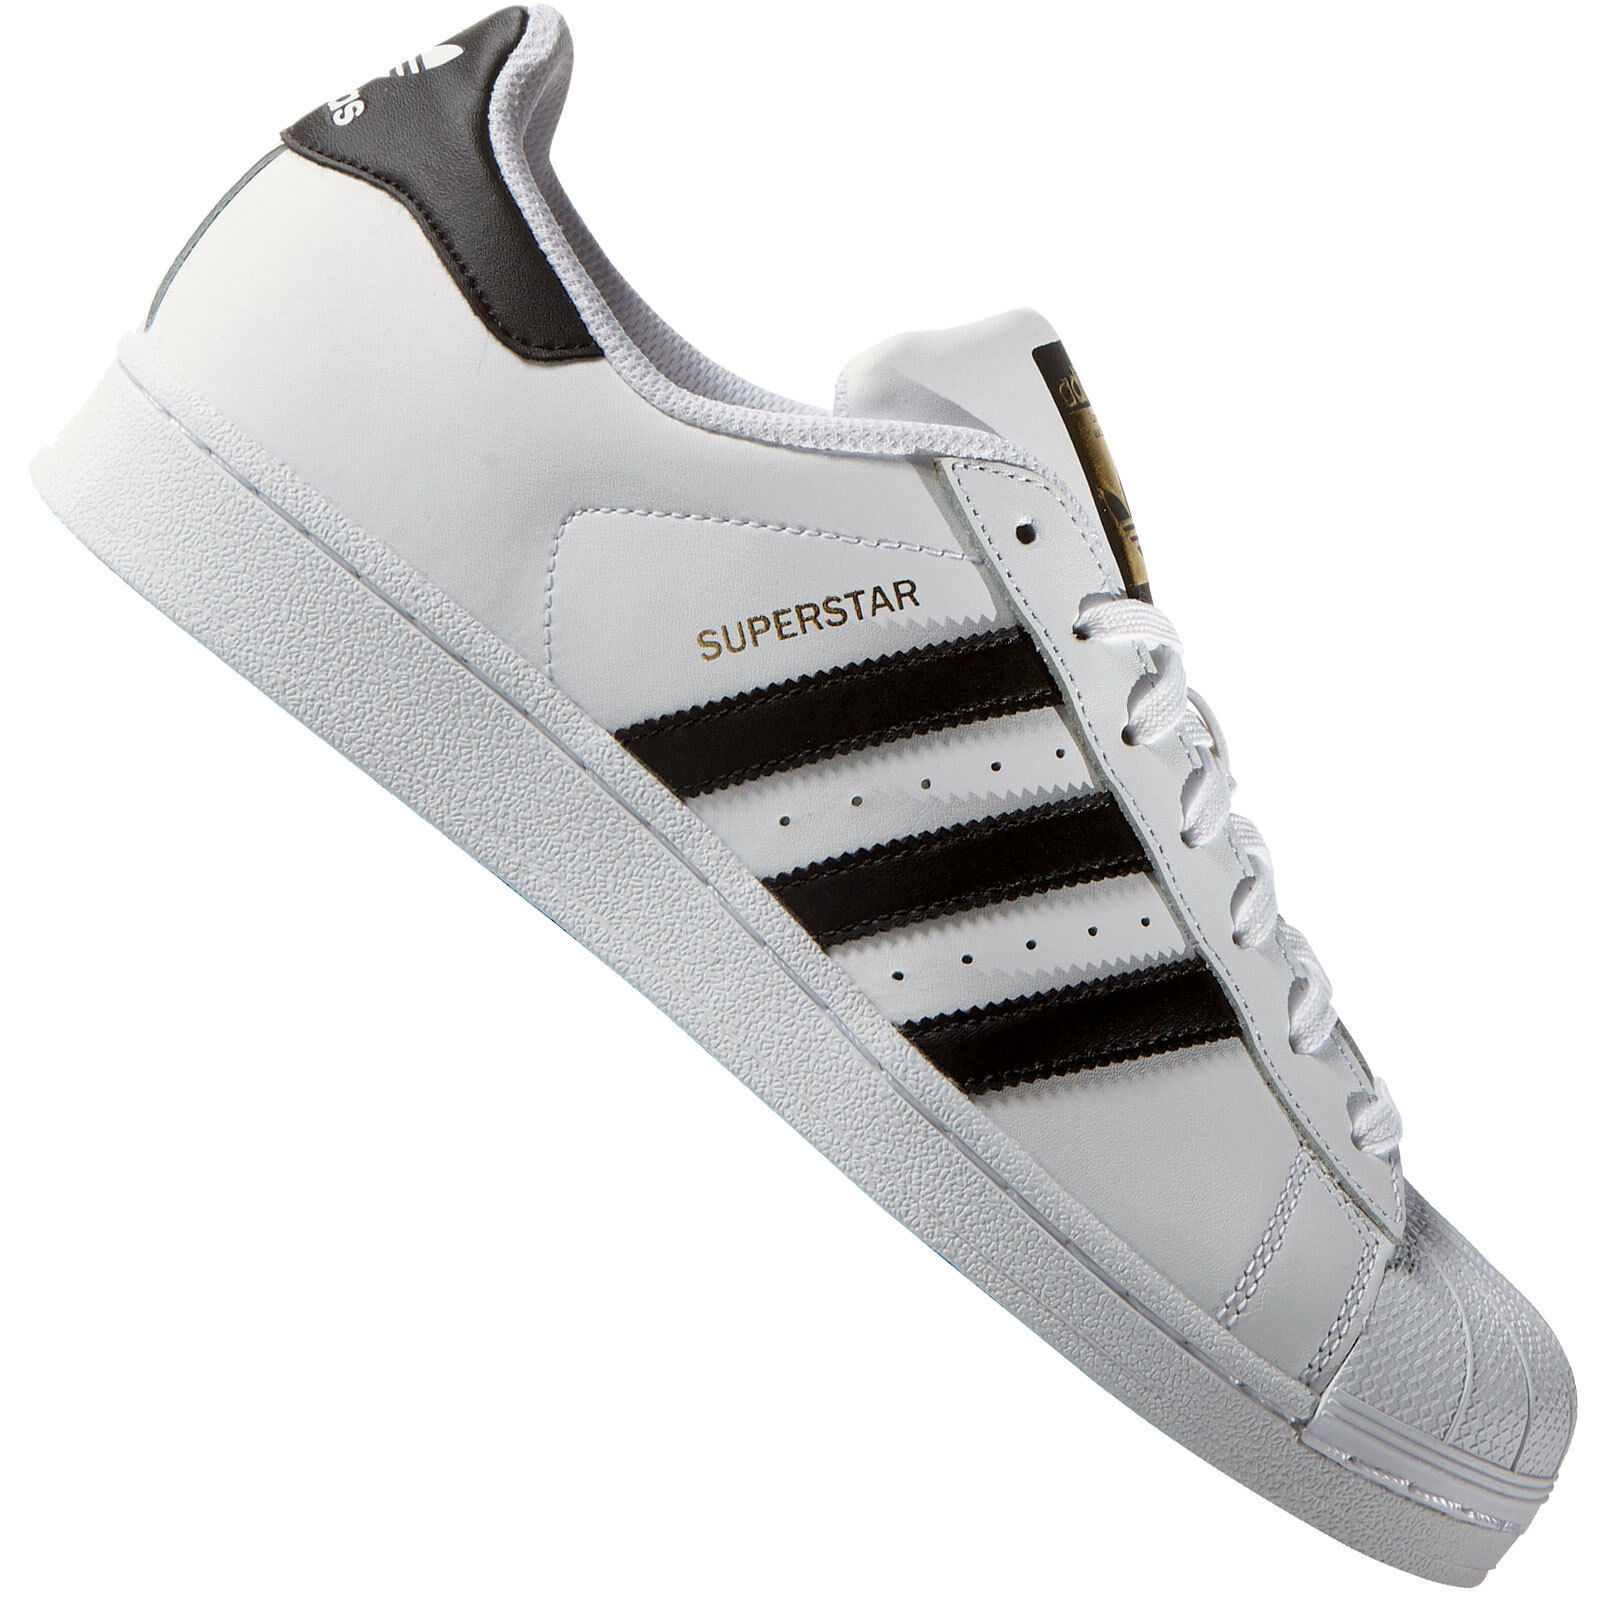 ADIDAS ORIGINALS SUPERSTAR MEN's WOMEN's Sneaker C77124 White Low Shoes Leder Comfortable and good-looking